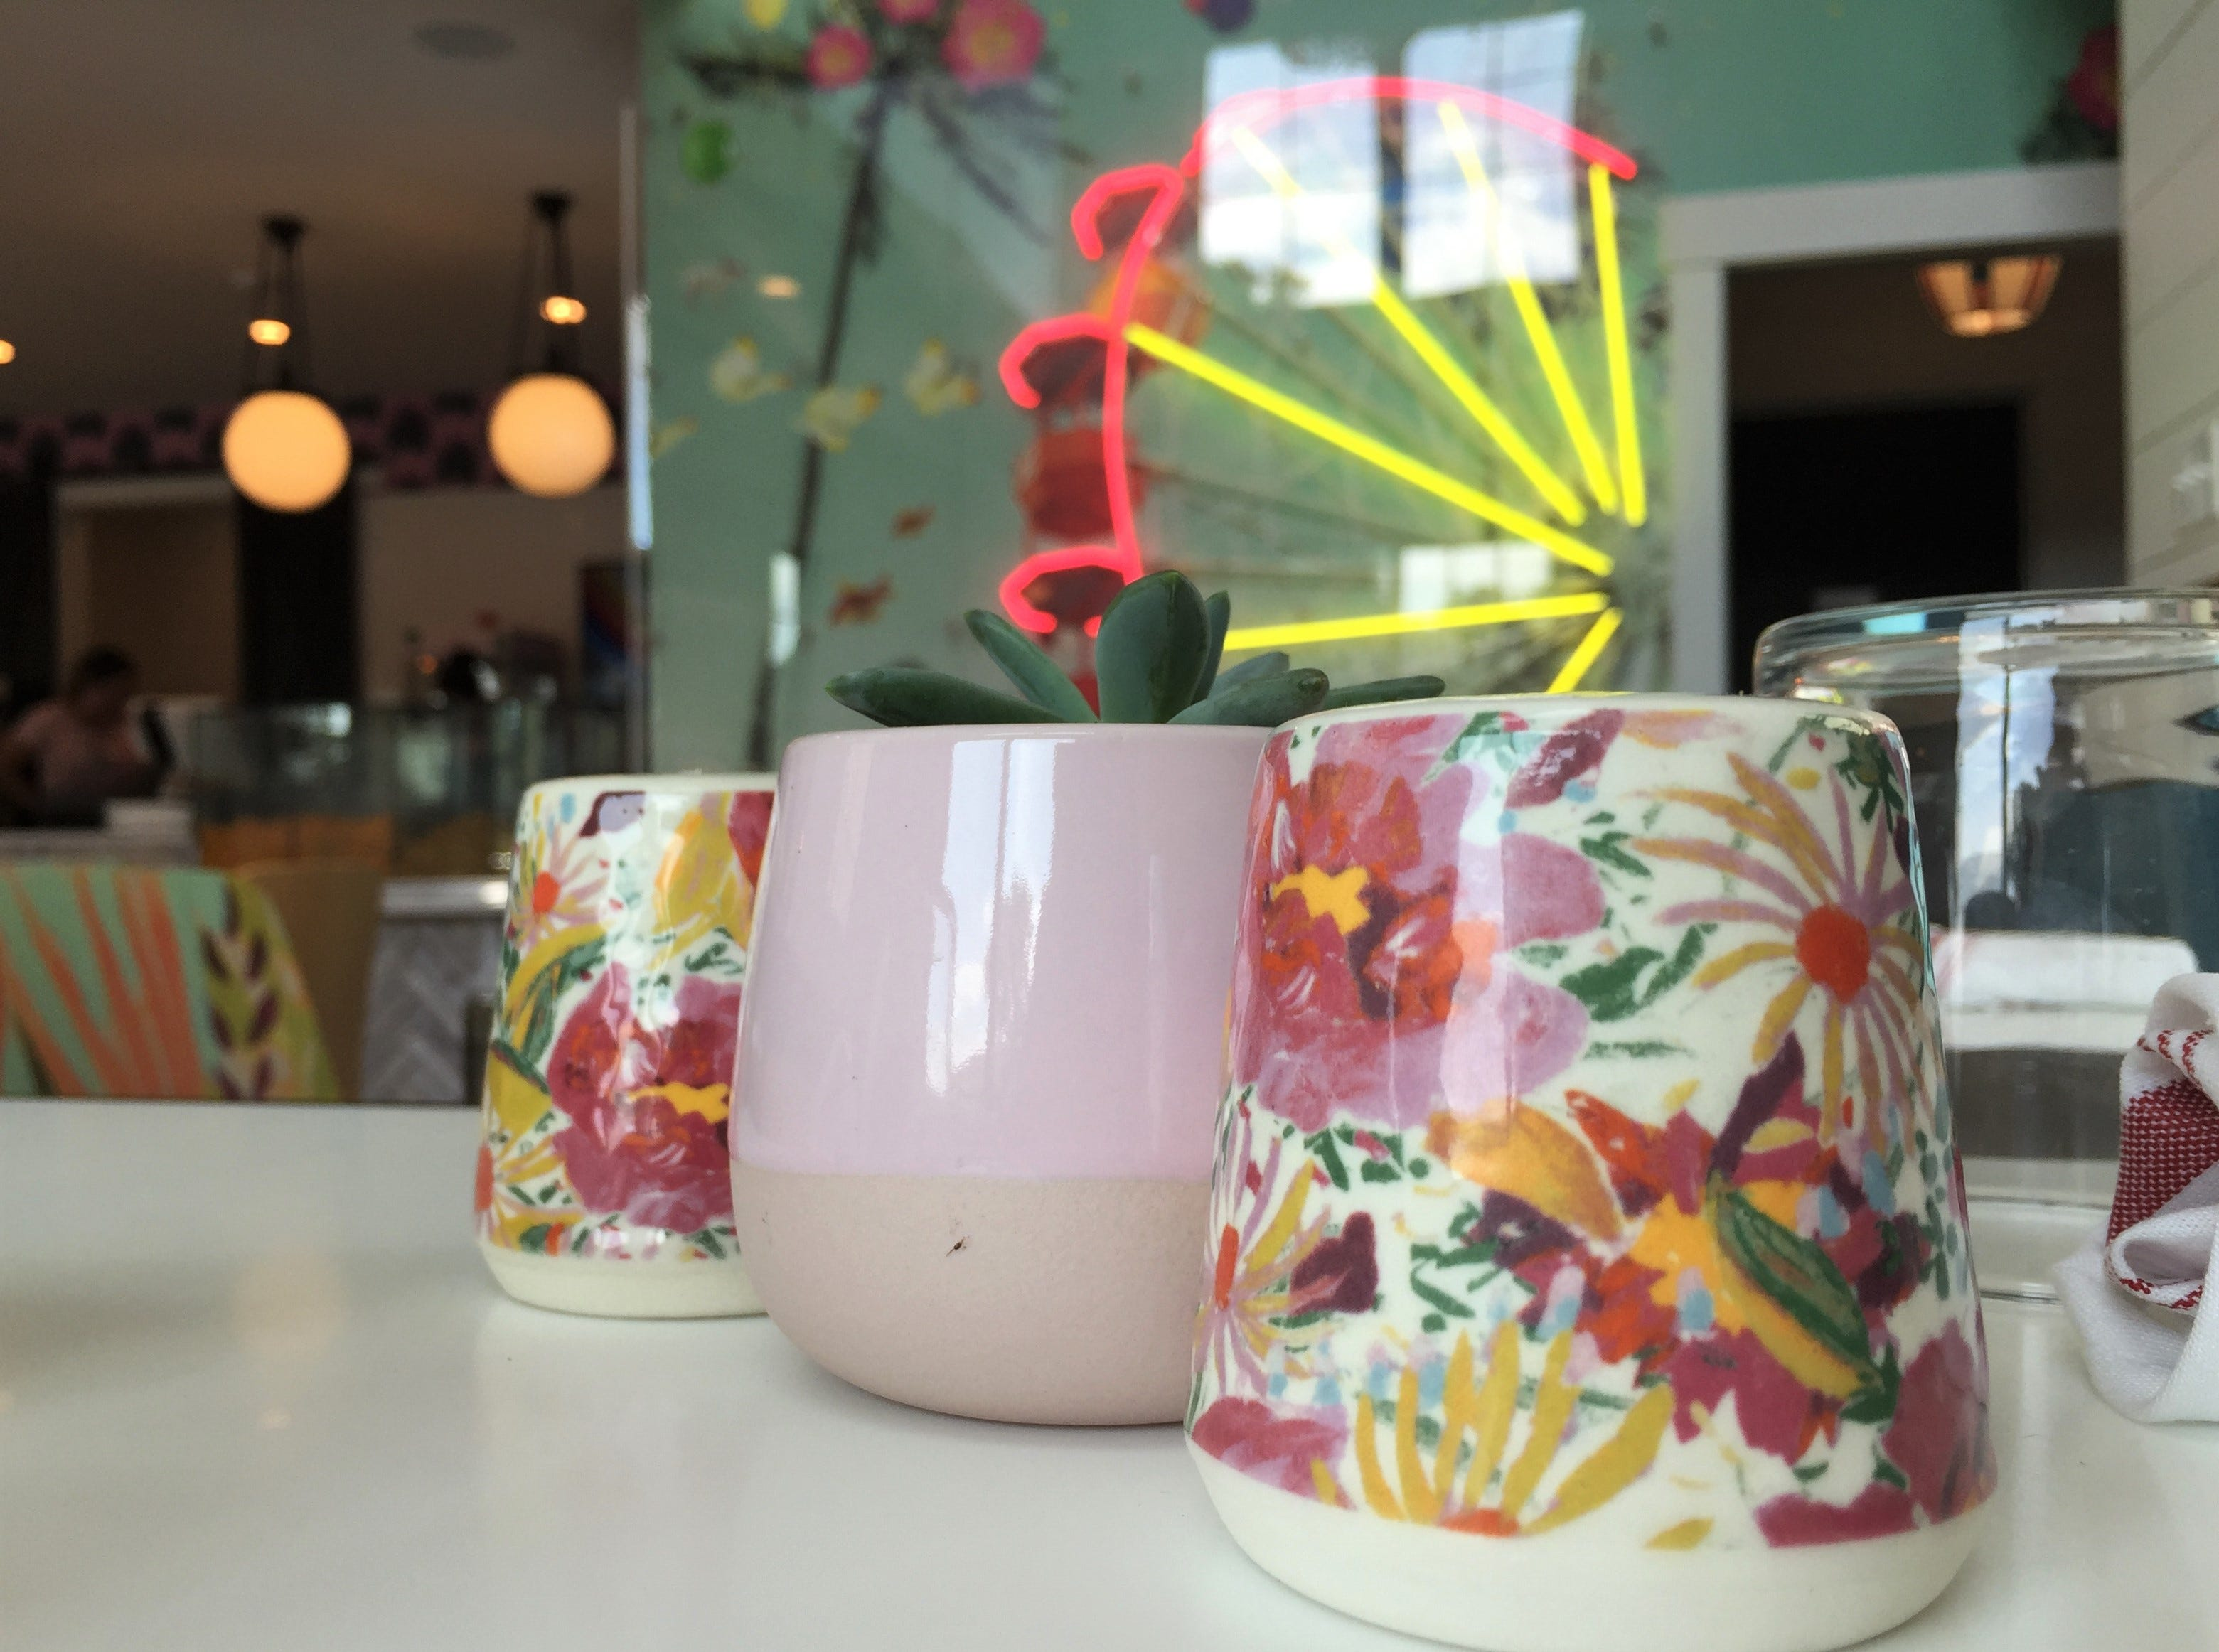 Salt and pepper shakers match floral-print chairs at Just Pop In! popcorn bar and cafe at 6406 Cornell Ave. in the Broad Ripple  community of Indianapolis.